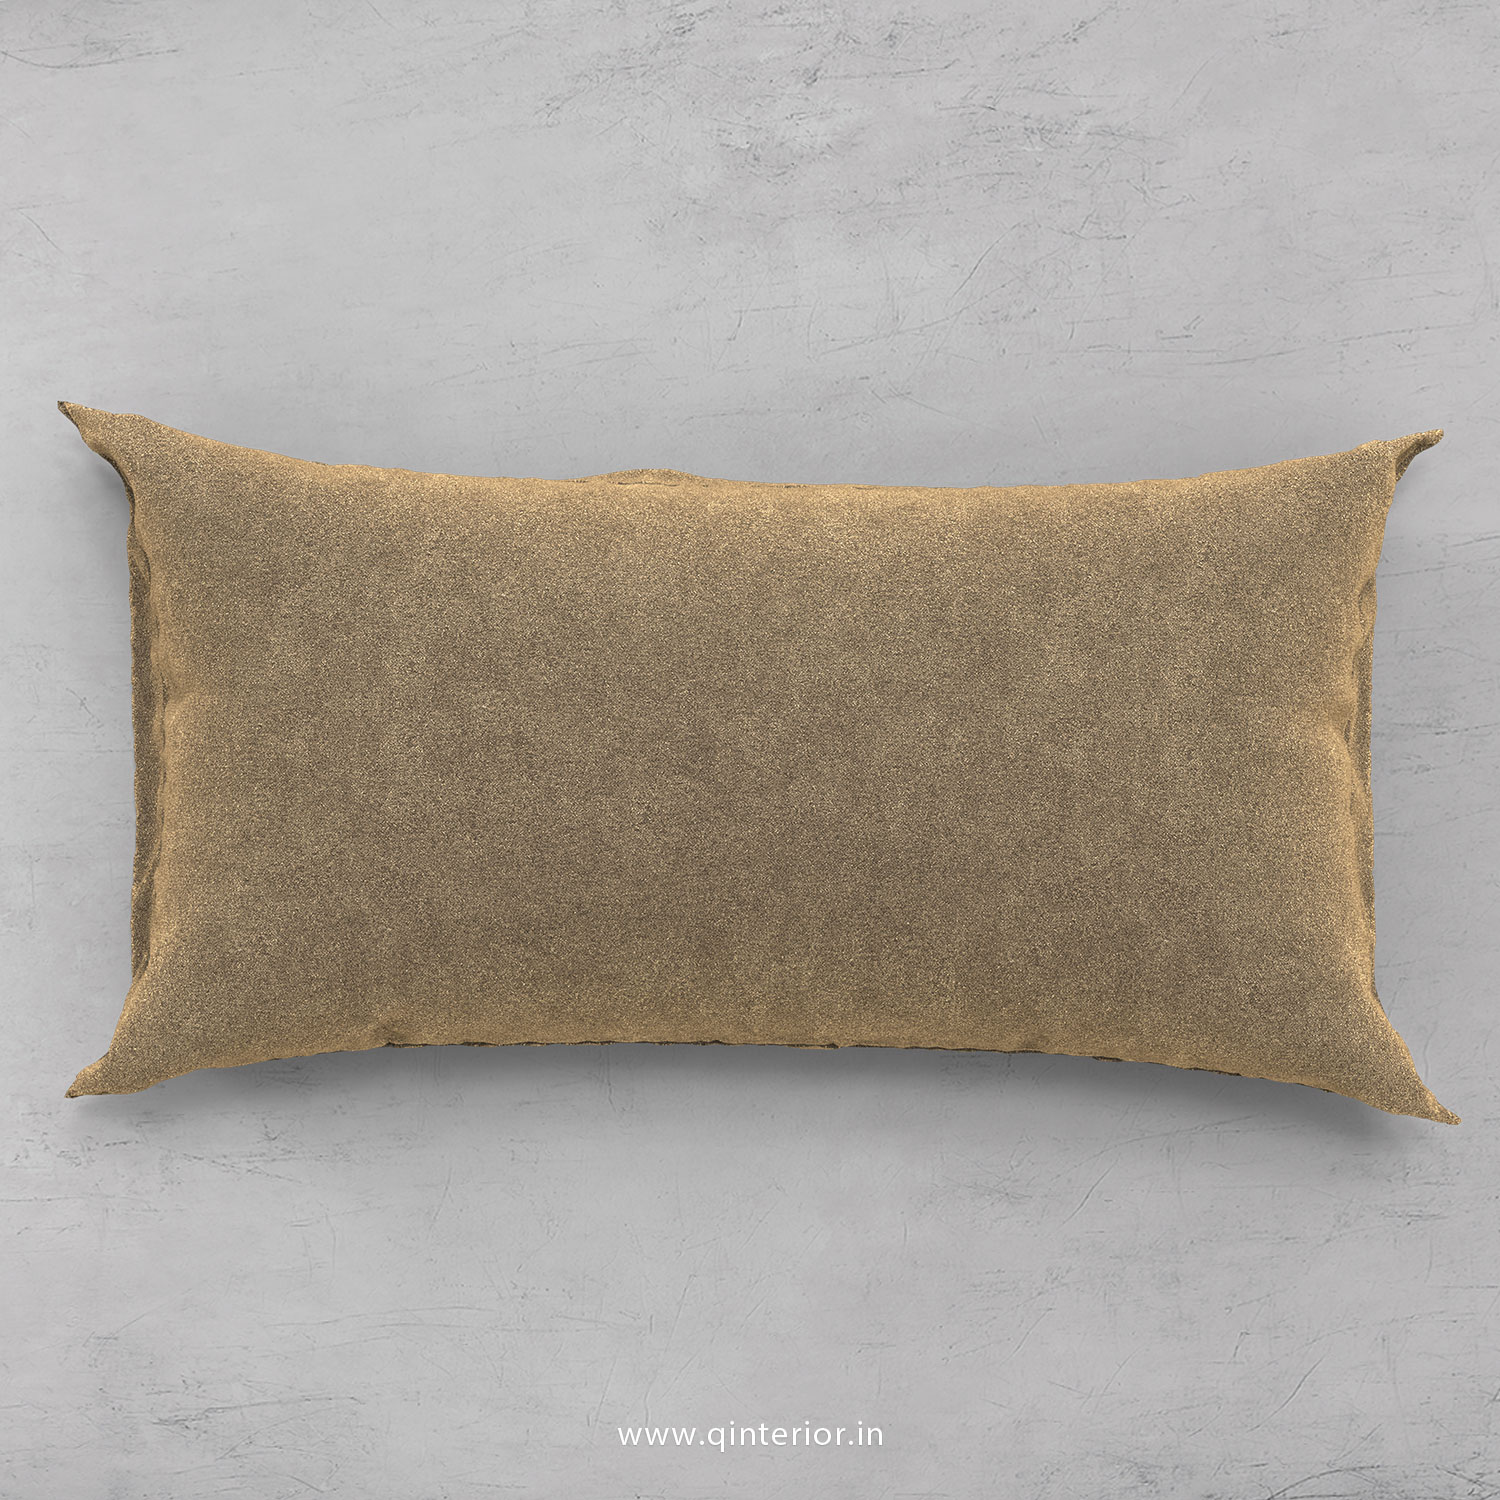 Cushion With Cushion Cover in Velvet Fabric- CUS002 FL03